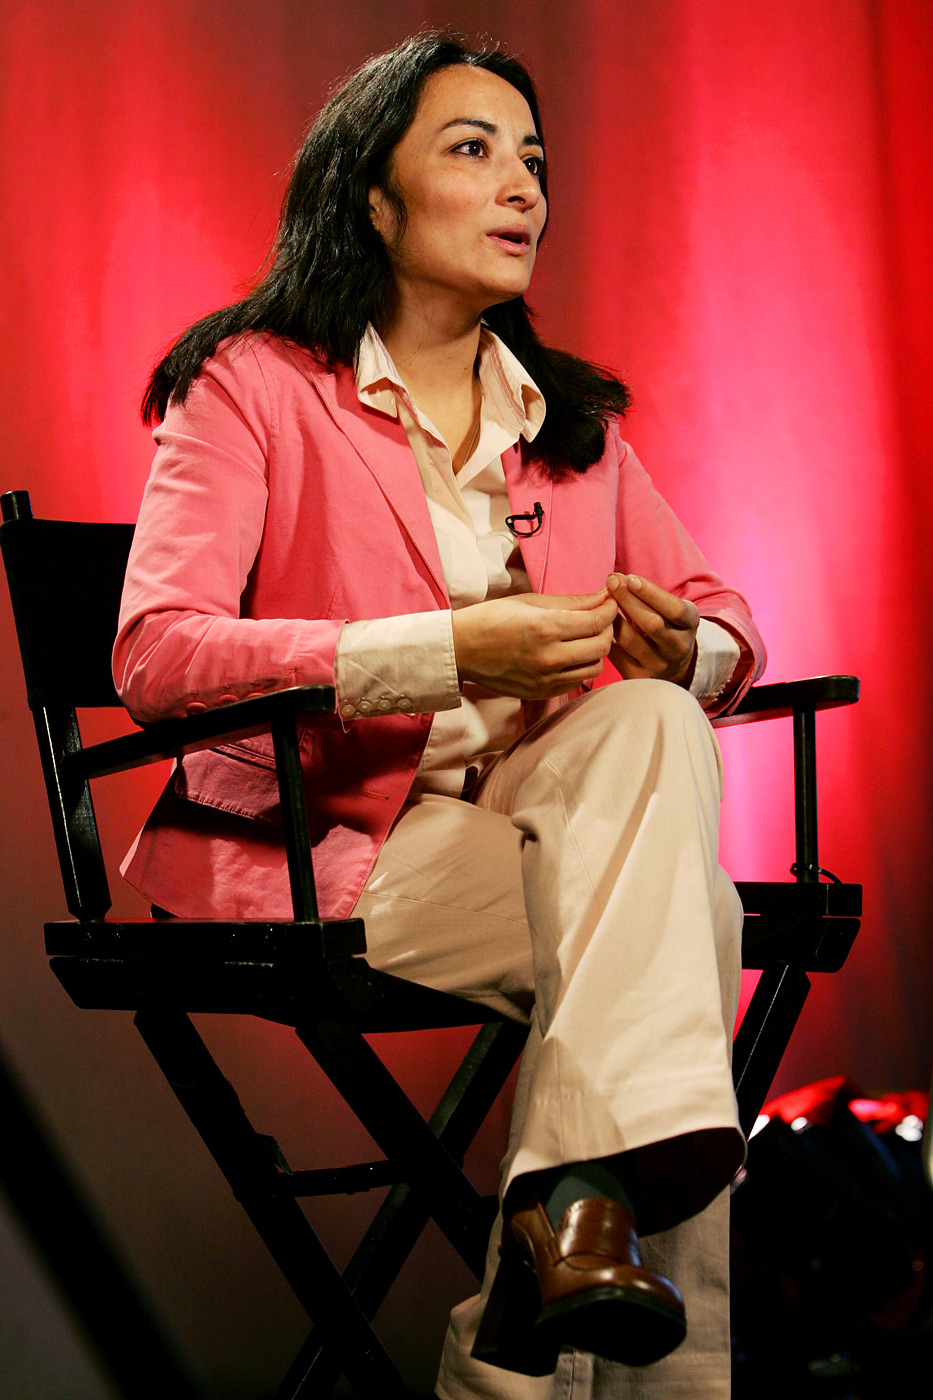 Asra Nomani during an interview in New York on April 6, 2005.